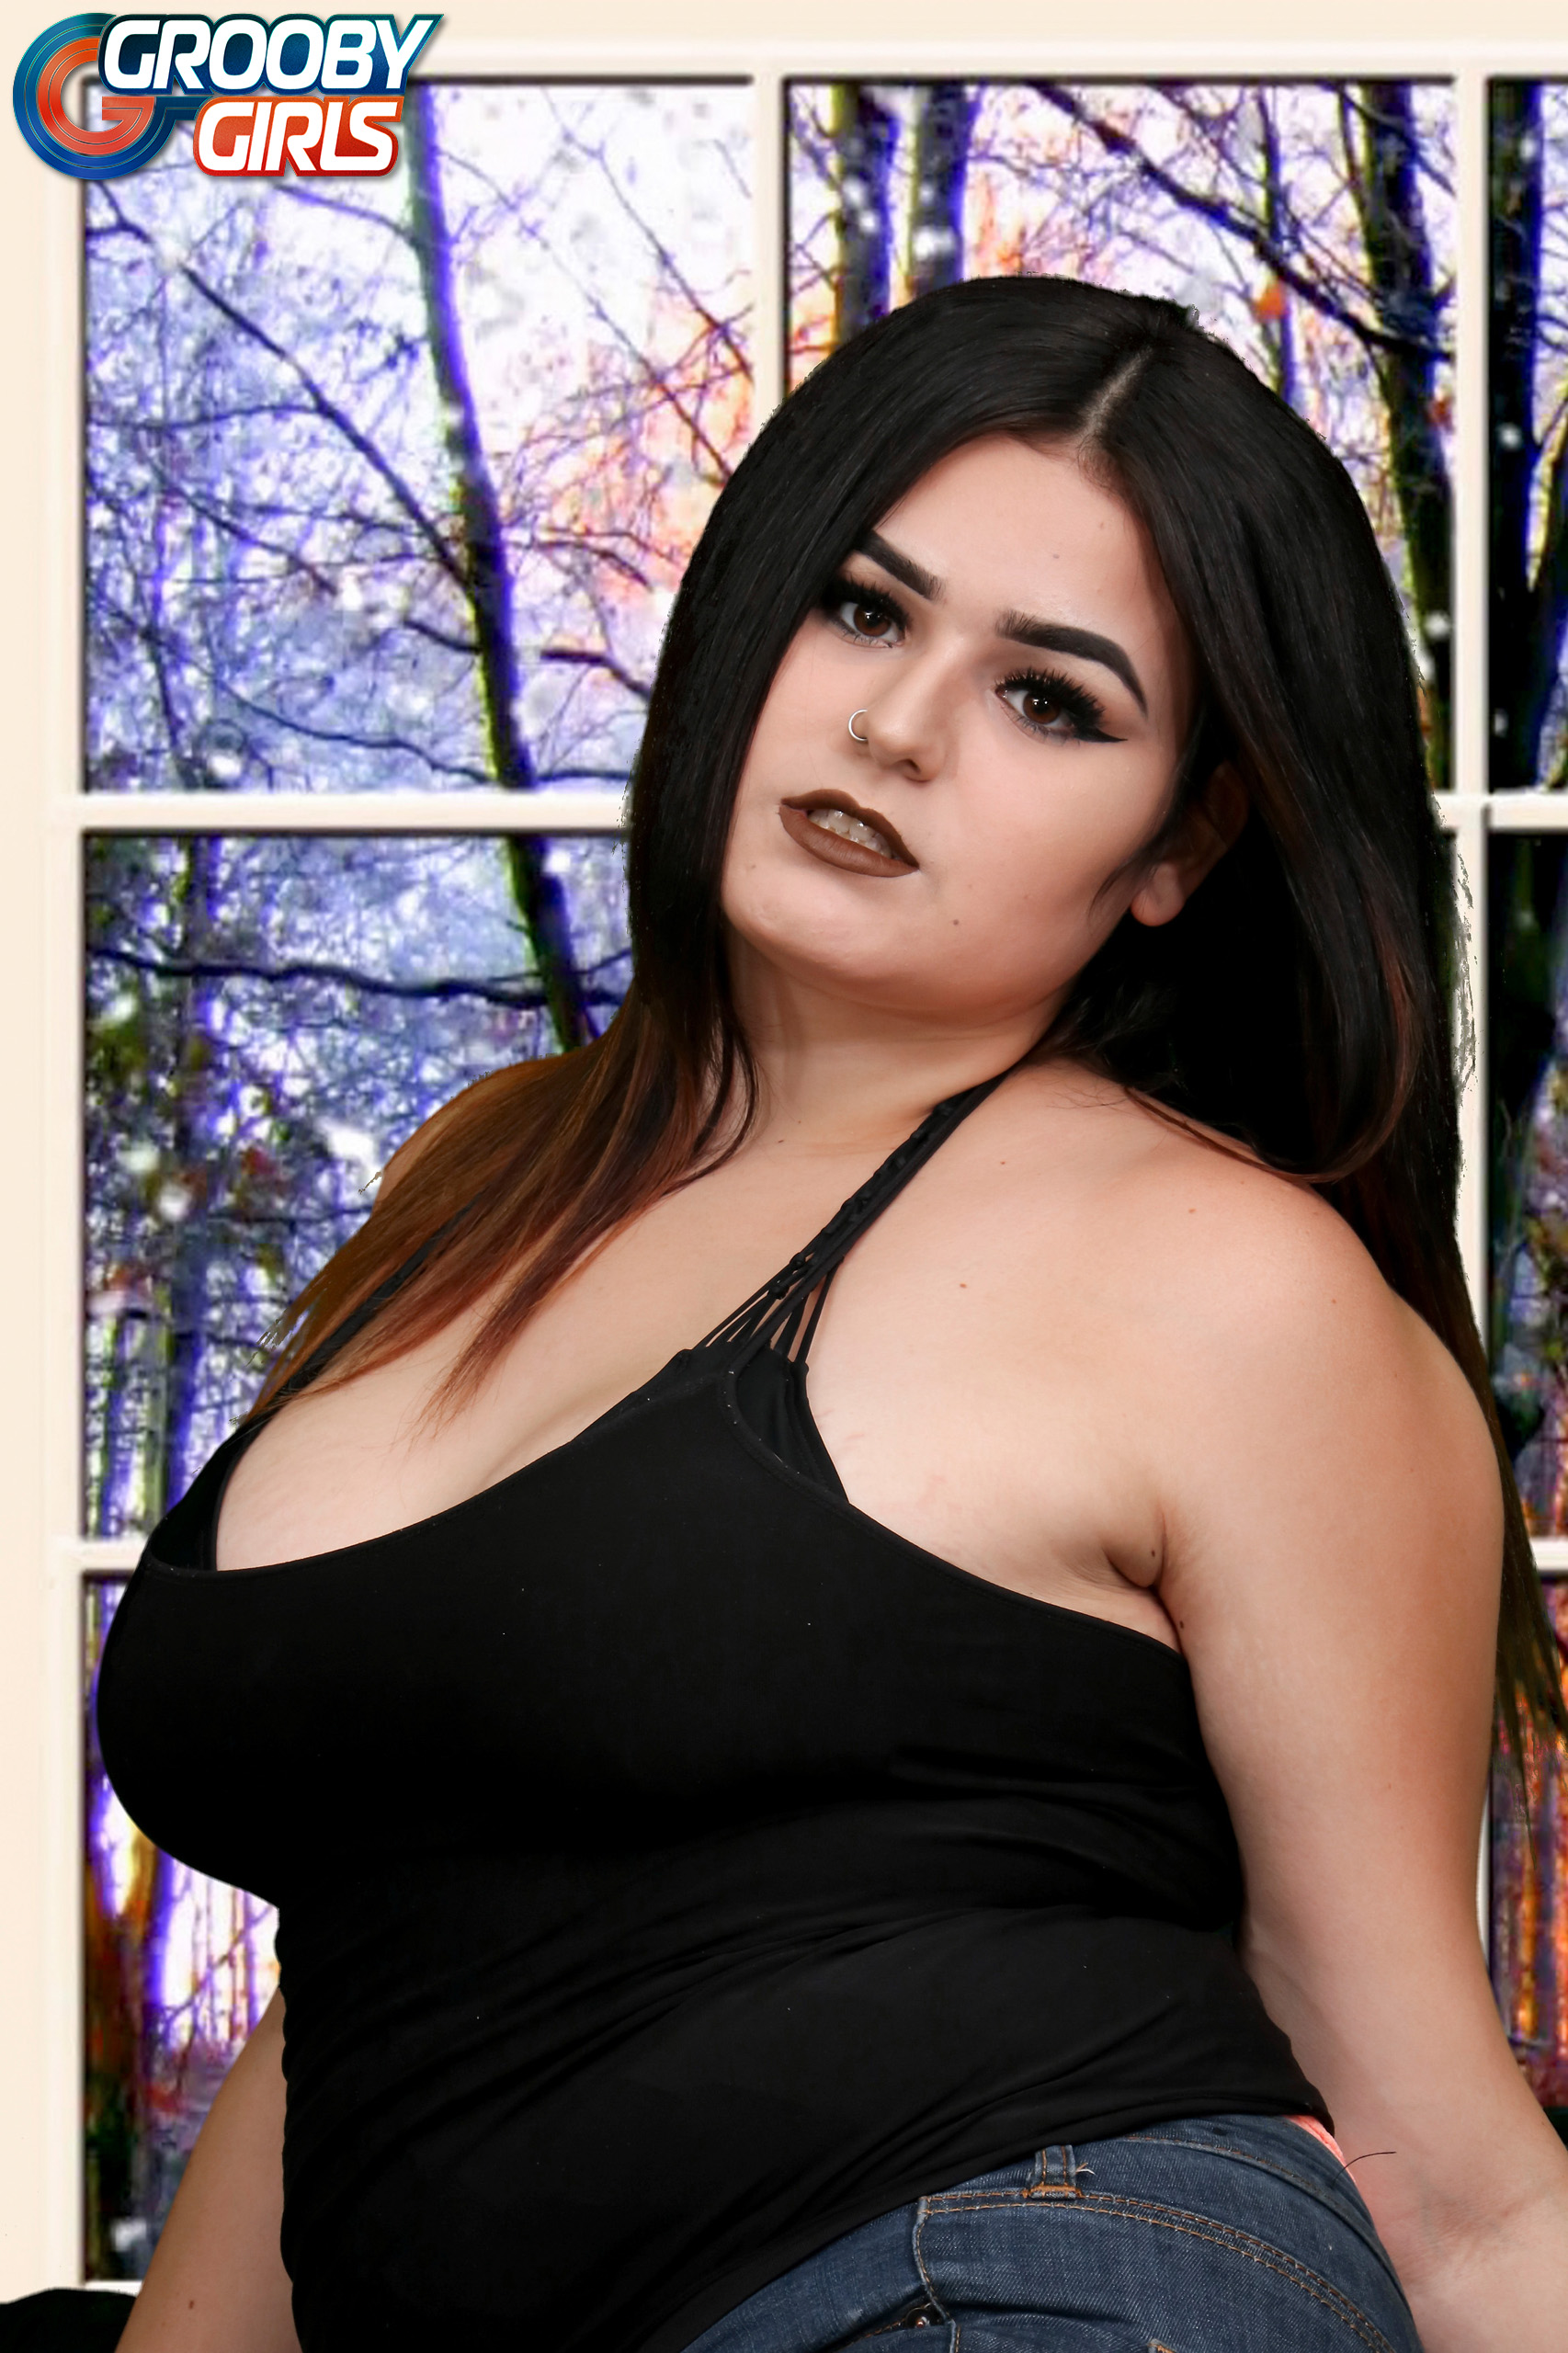 Curvaceous #GroobyNewbie Veronica Cakes - Grooby Girls Blog